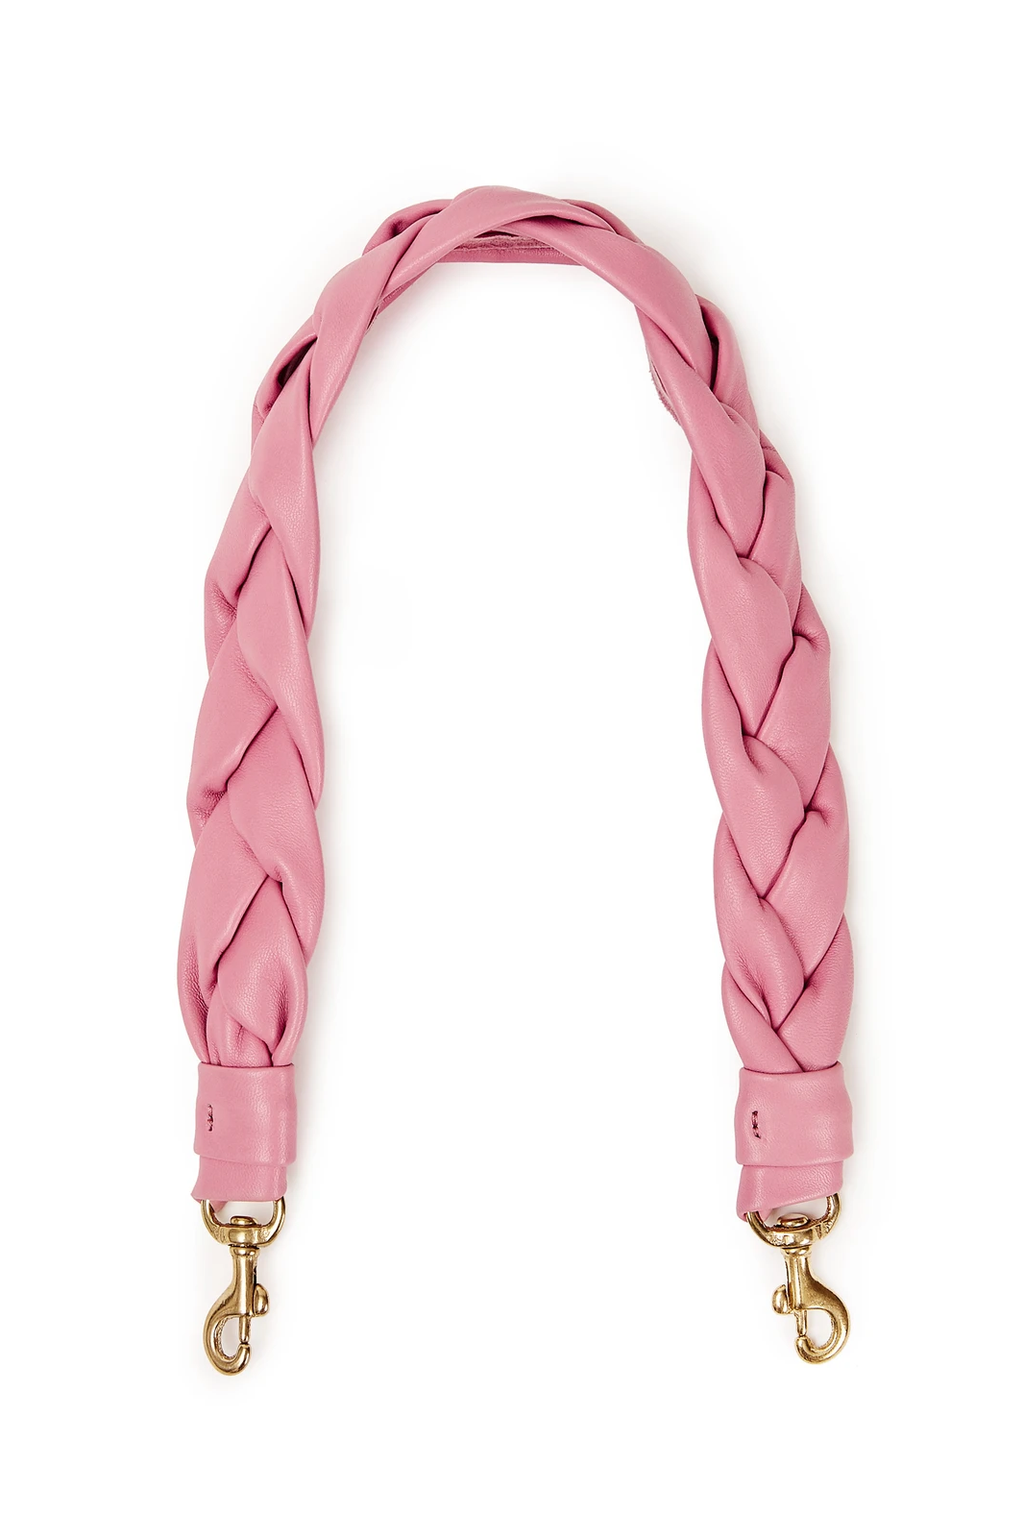 clare v. shoulder strap braided petal leather